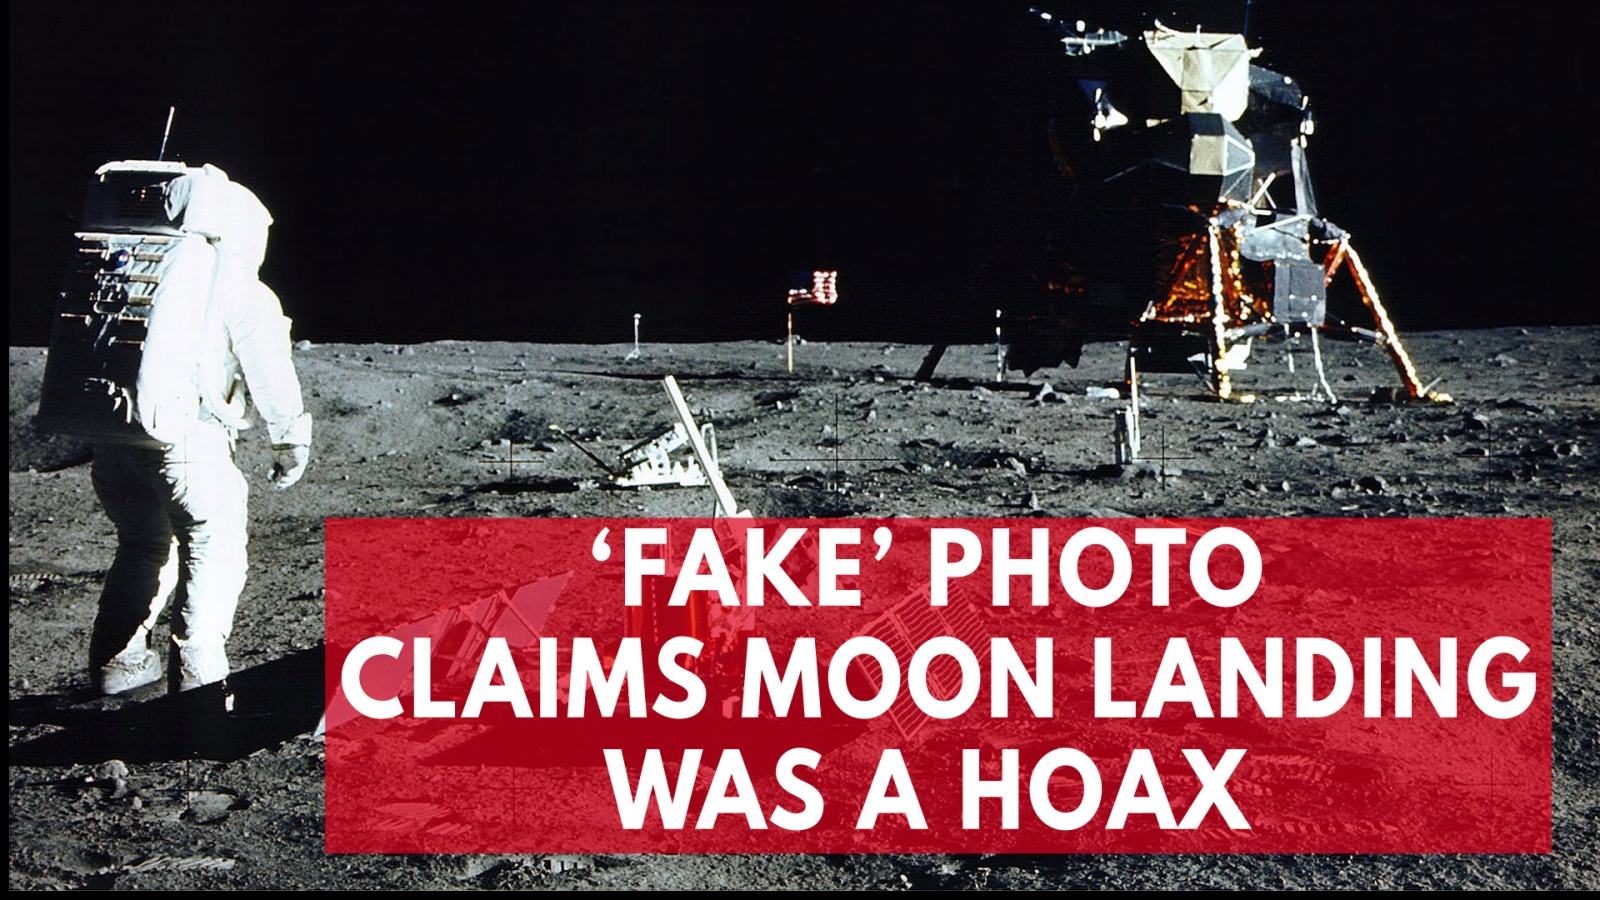 'Fake' photo continues conspiracy that the moon landing was a hoax